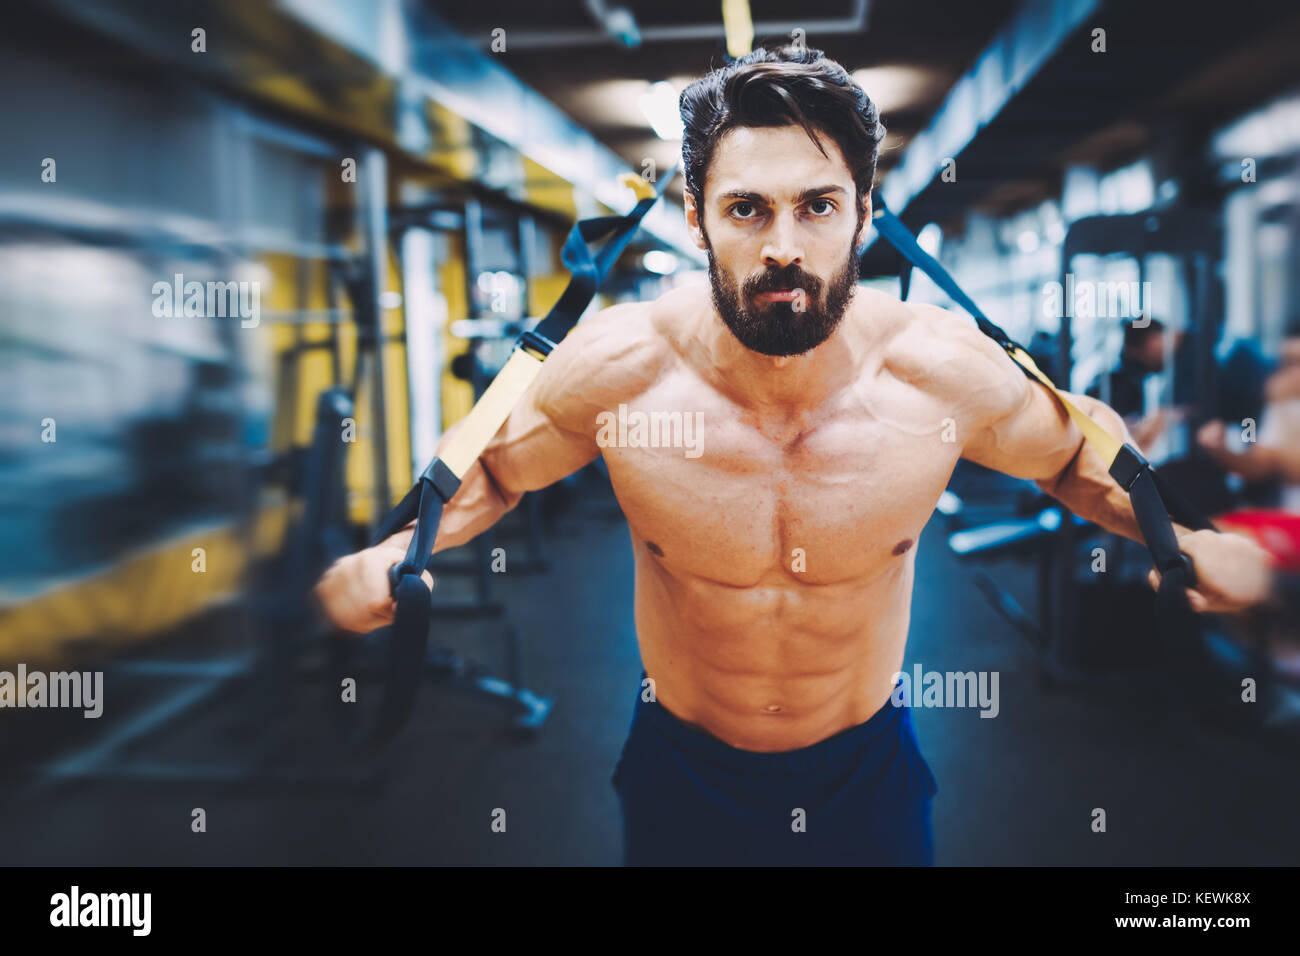 Young handsome man doing exercises in gym Photo Stock